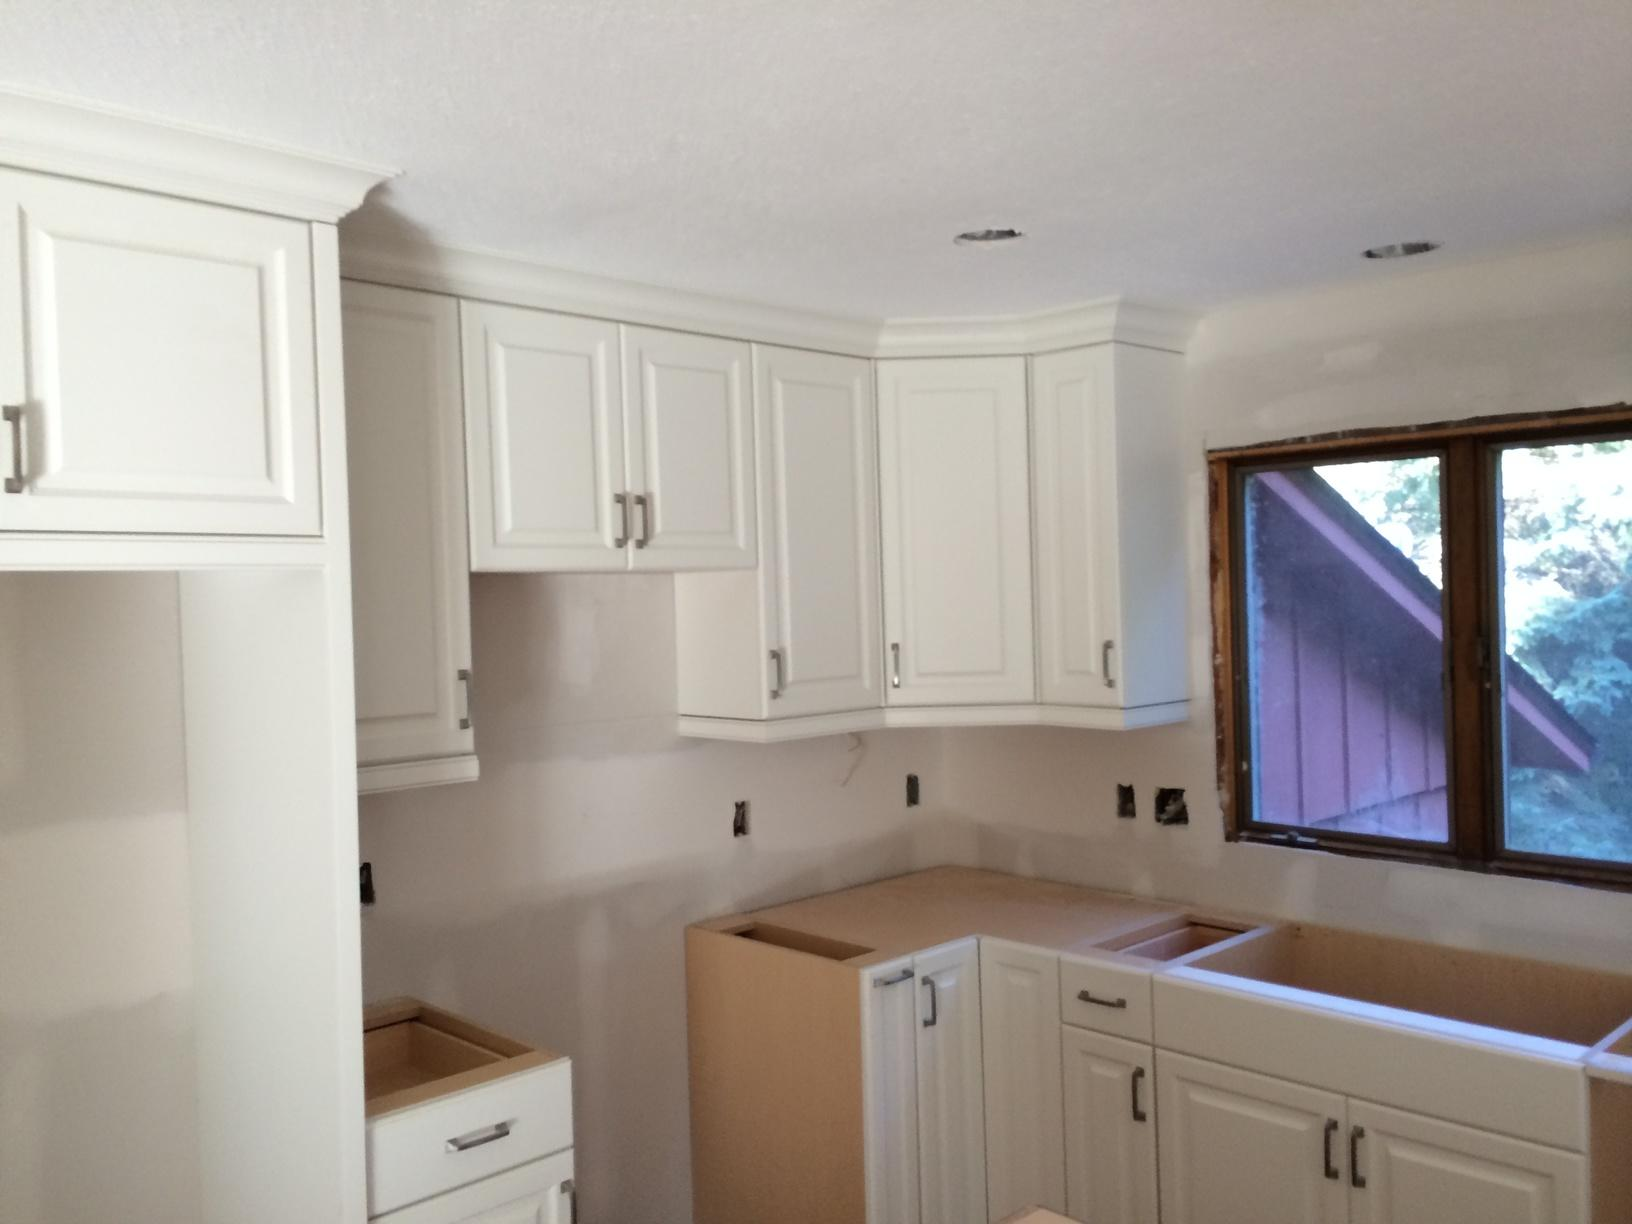 Progress photo with newly installed cabinetry.